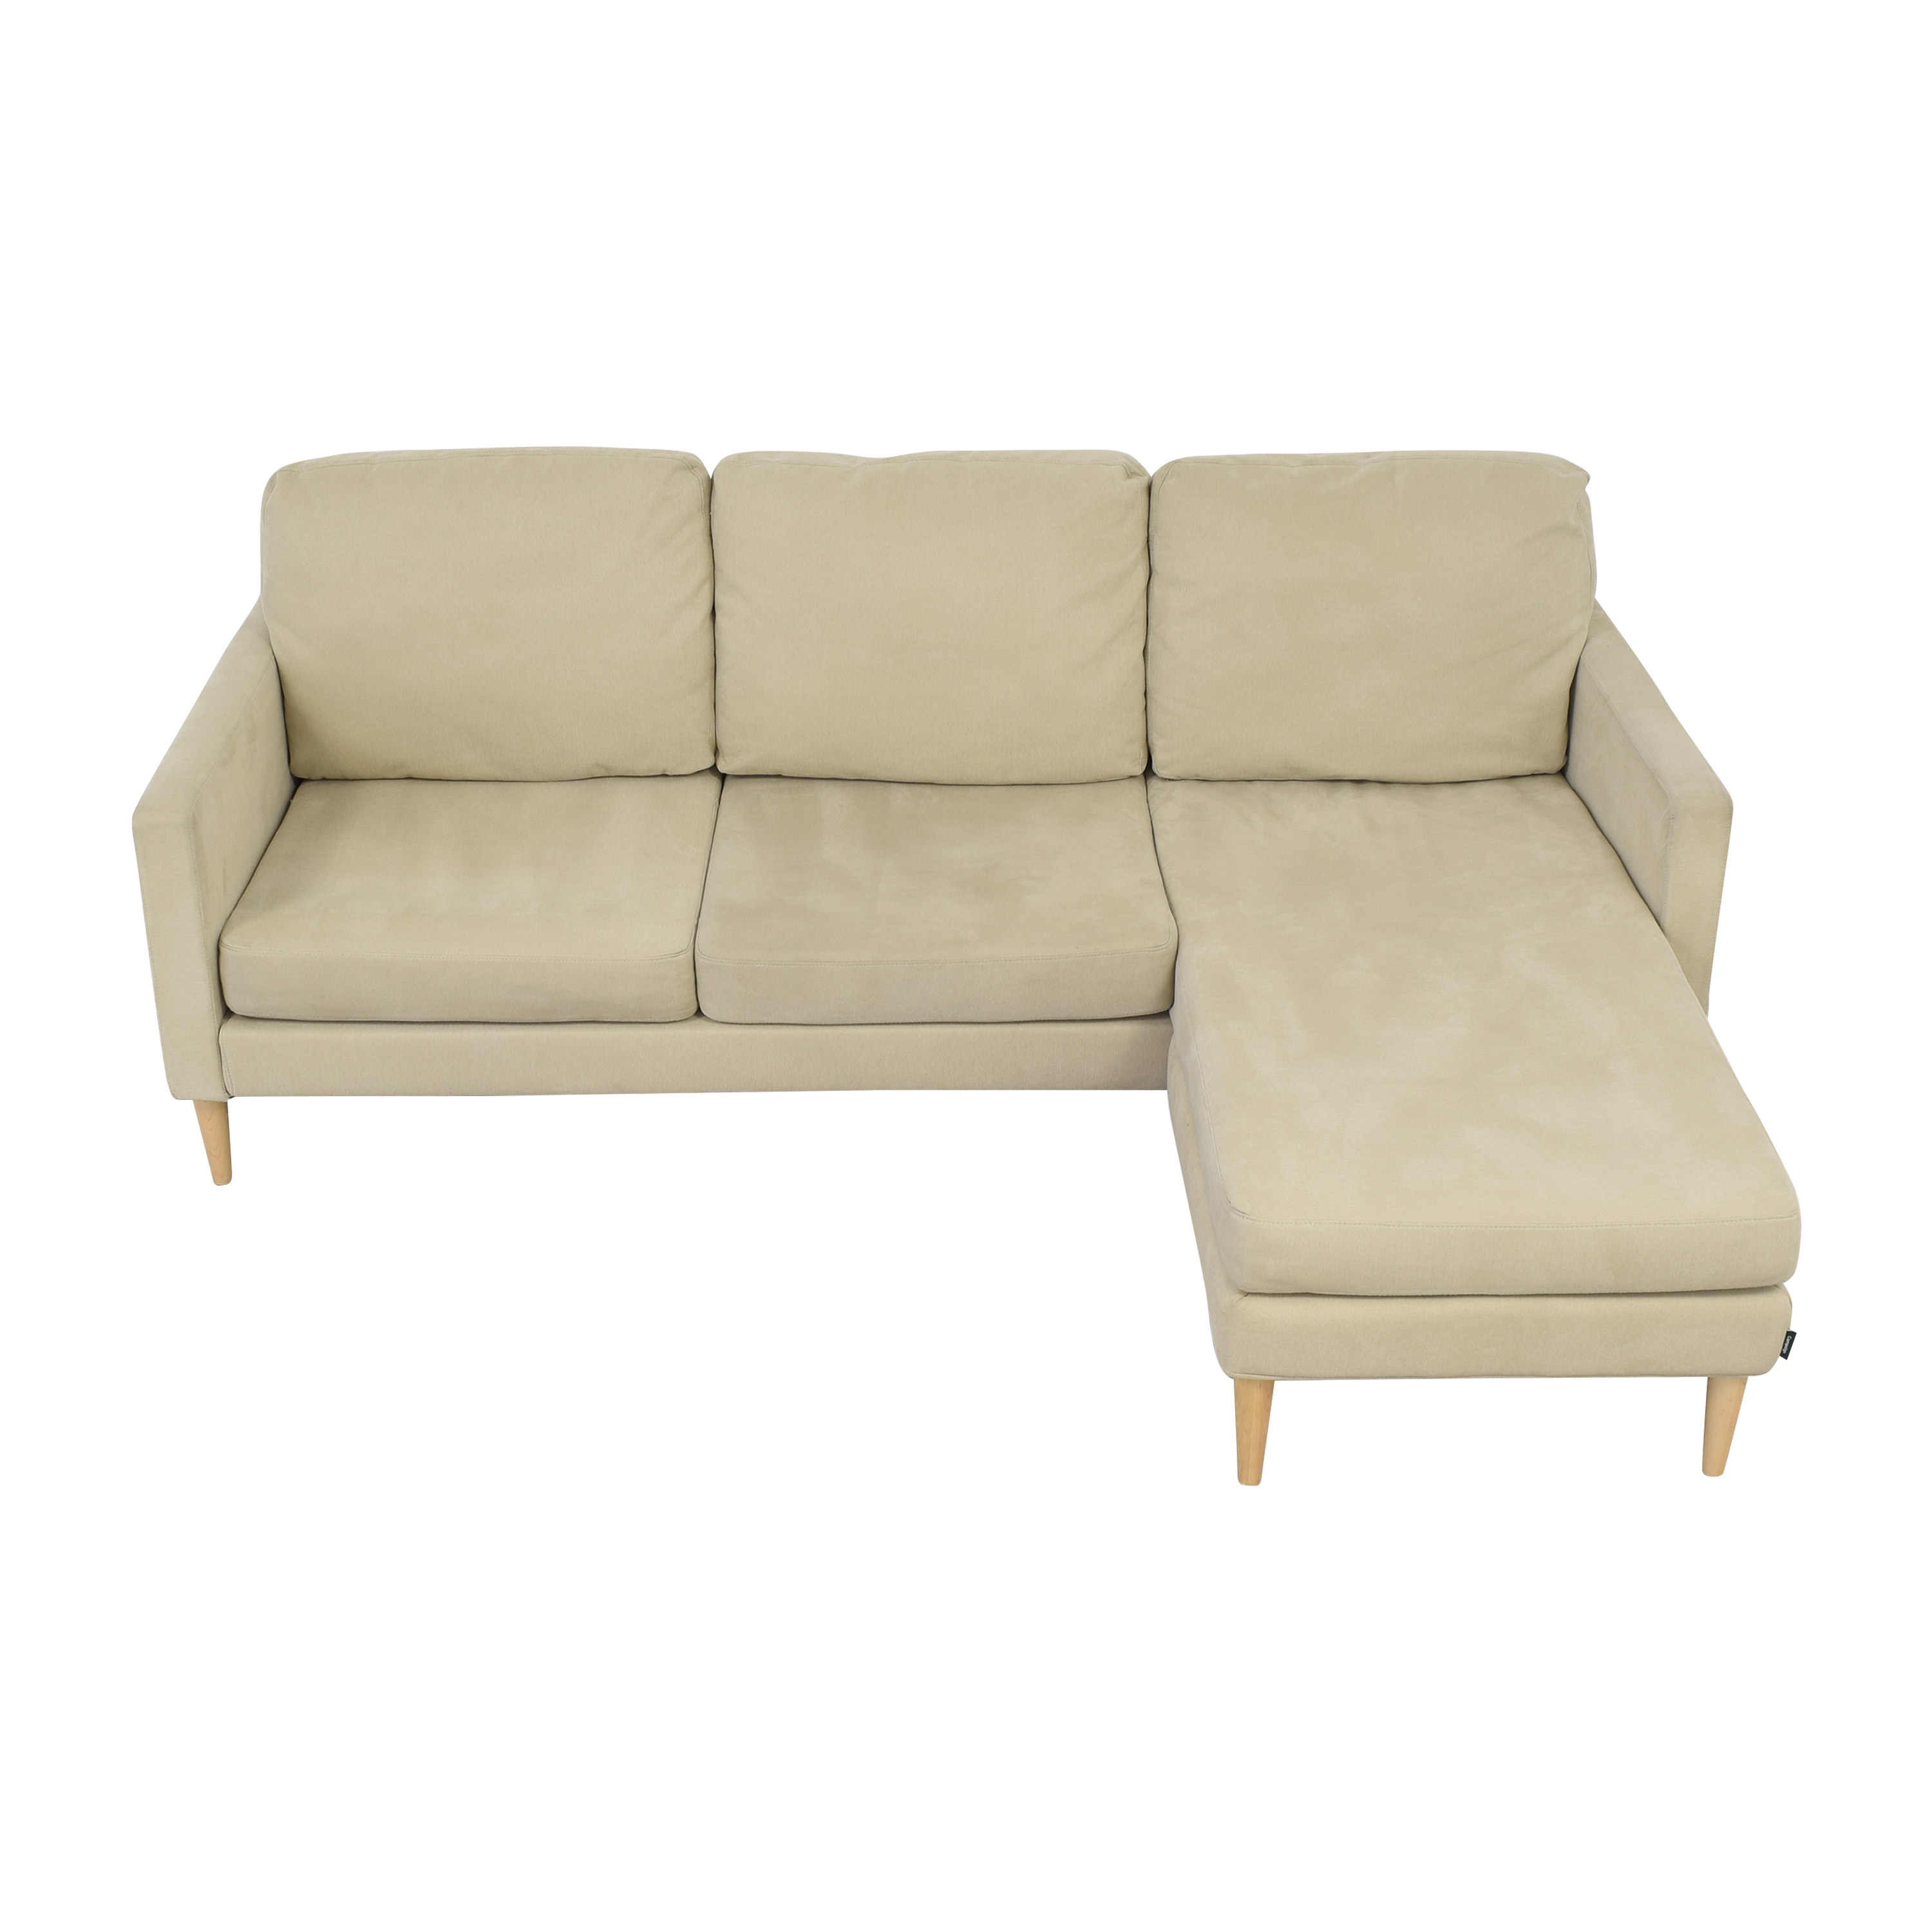 57 Off Campaign Campaign Modern Sectional Sofa Sofas